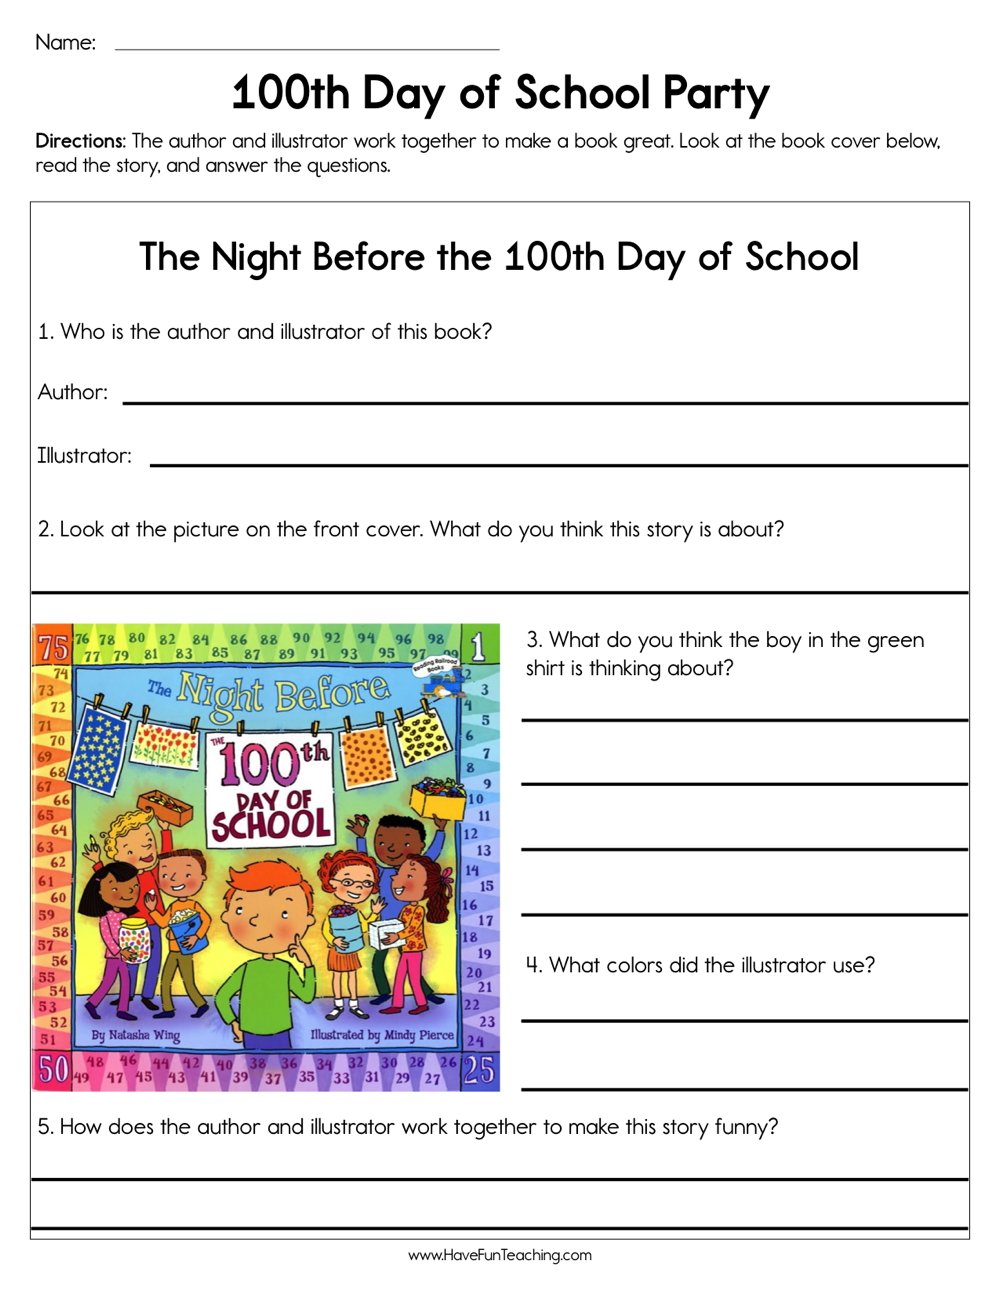 medium resolution of 100th Day of School Party Worksheet • Have Fun Teaching